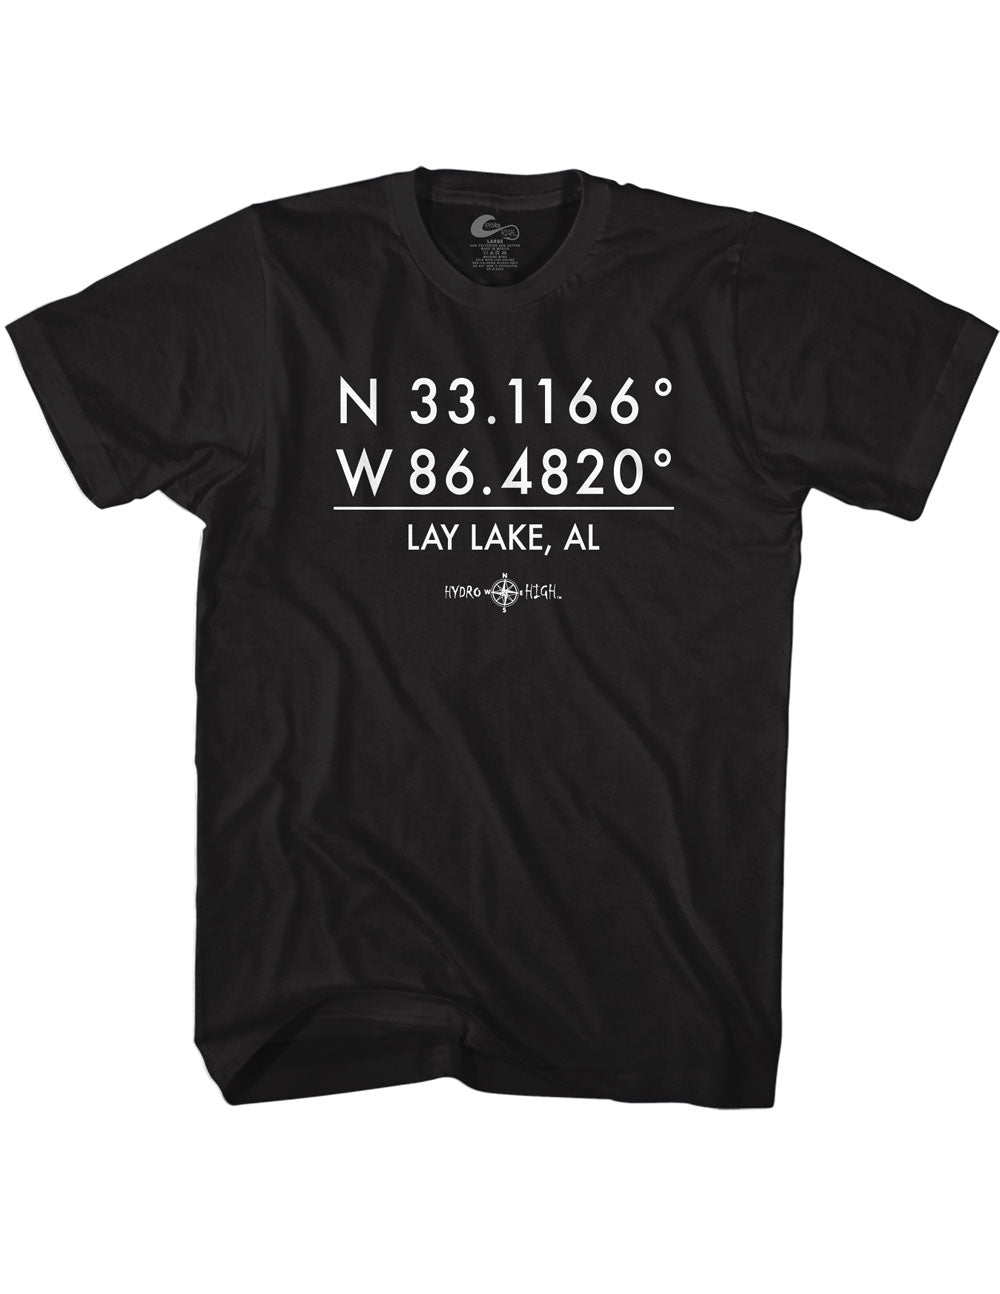 Lay Lake GPS Coordinates T-Shirt